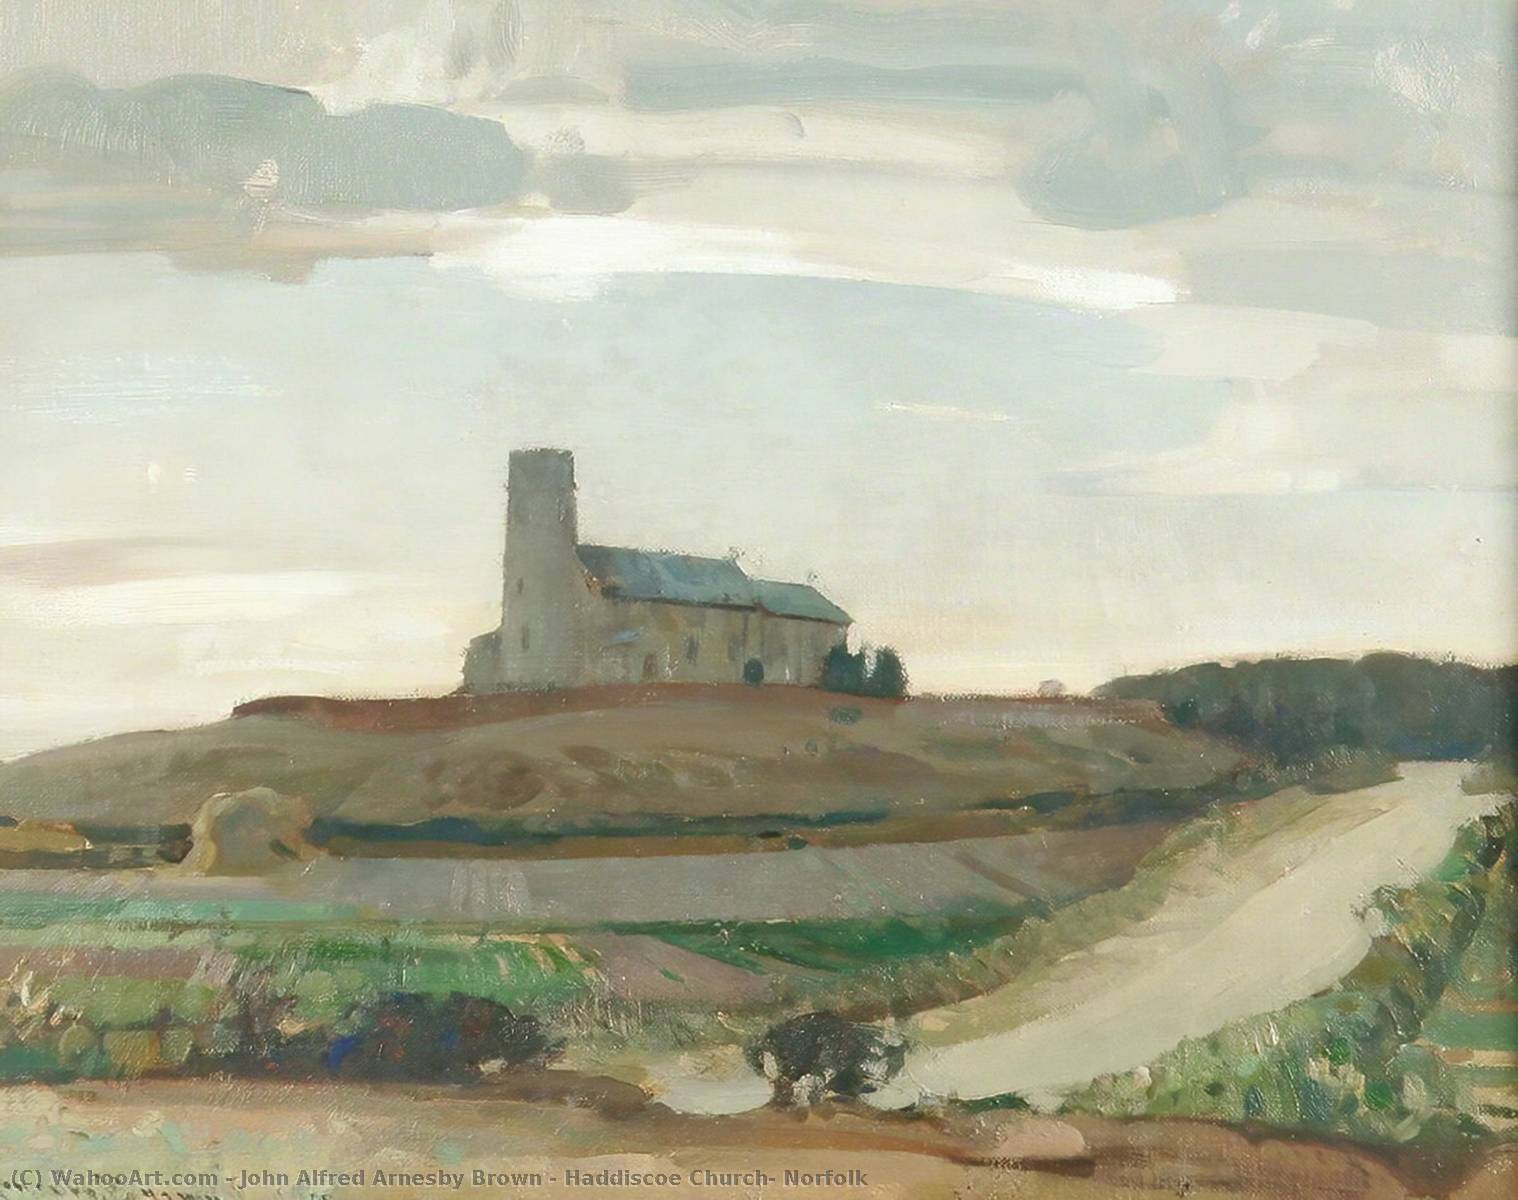 Haddiscoe Church, Norfolk, Oil On Canvas by John Alfred Arnesby Brown